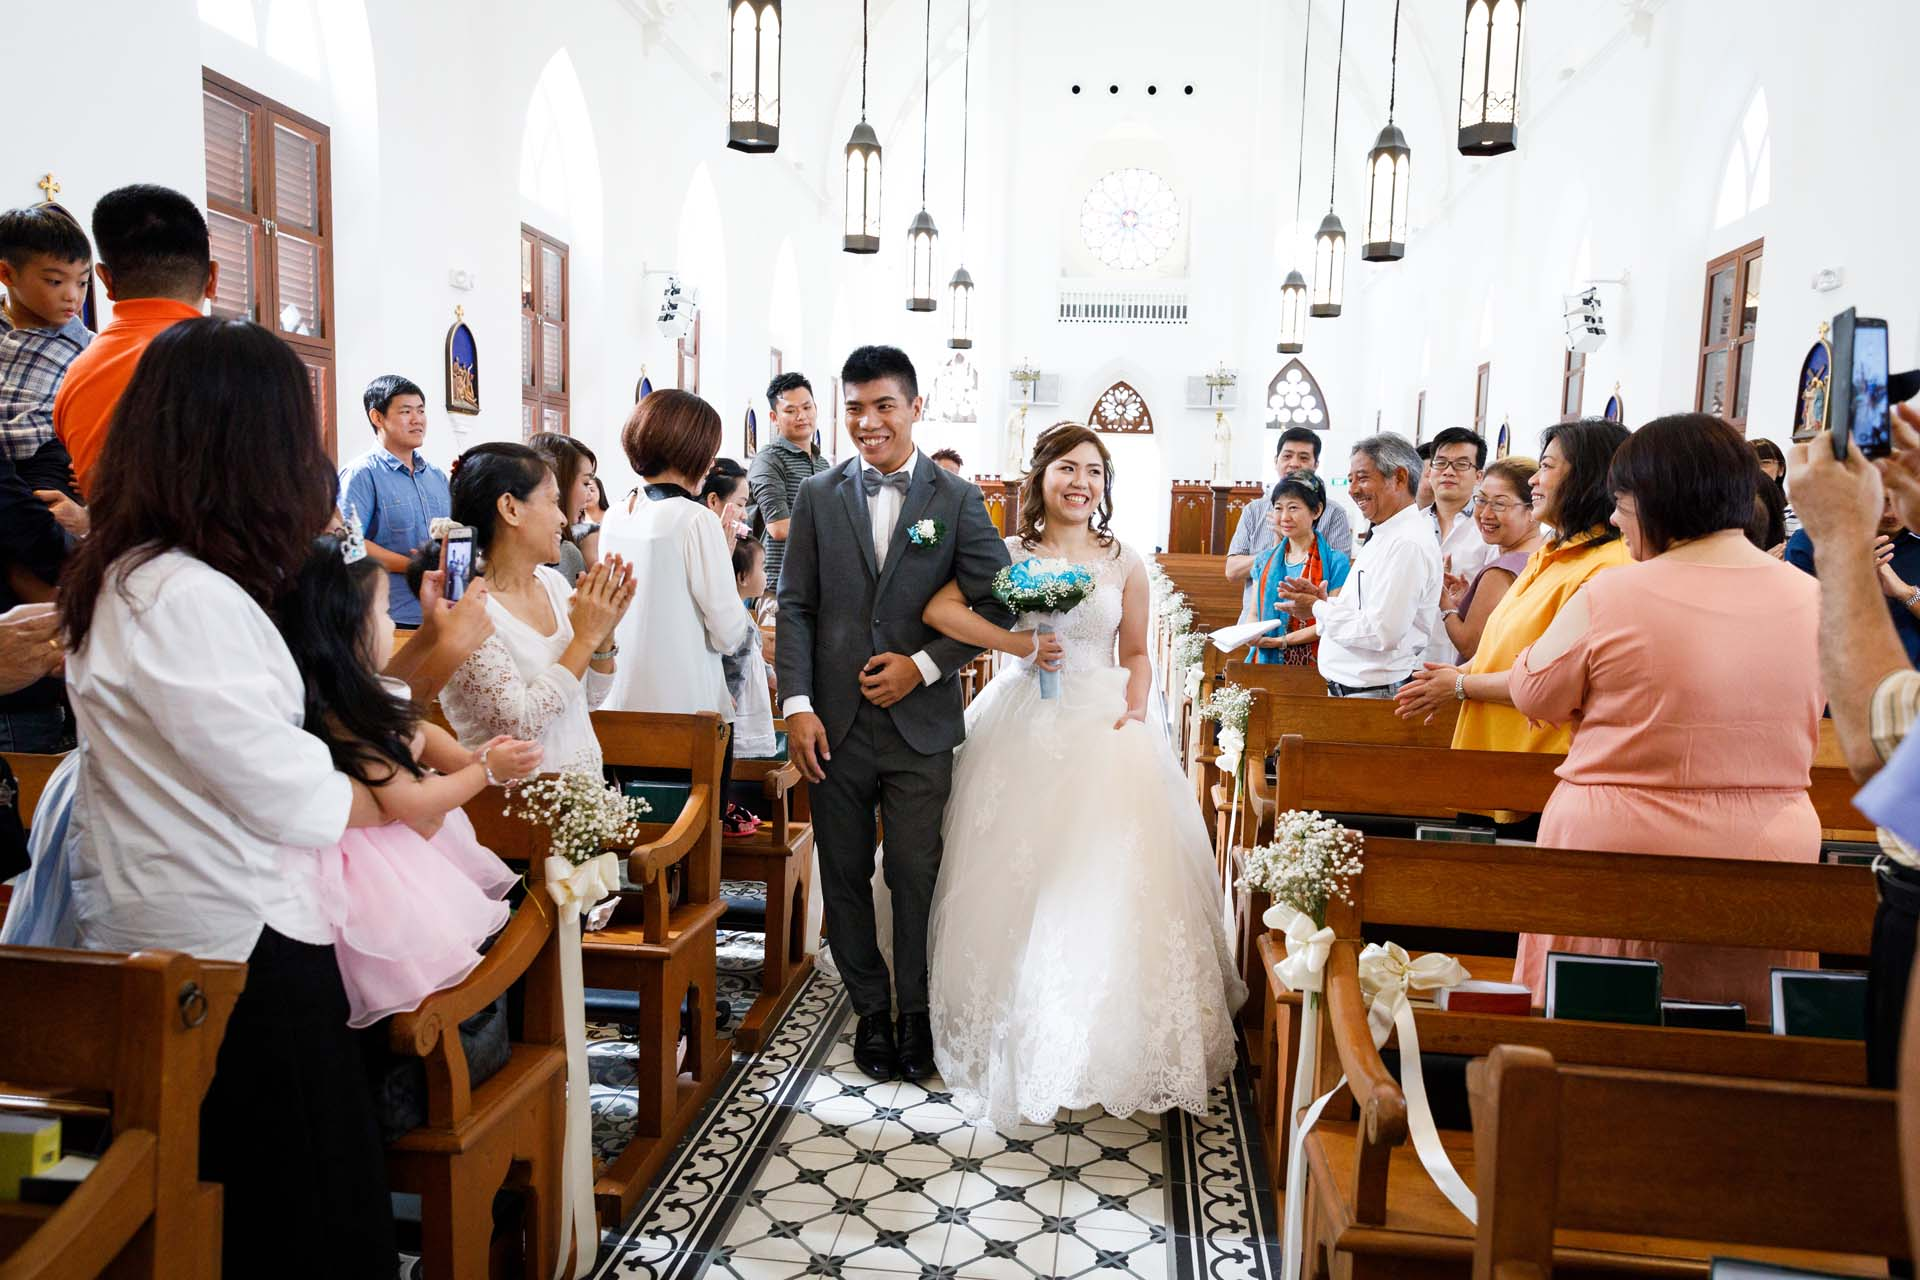 The couple entering the church.